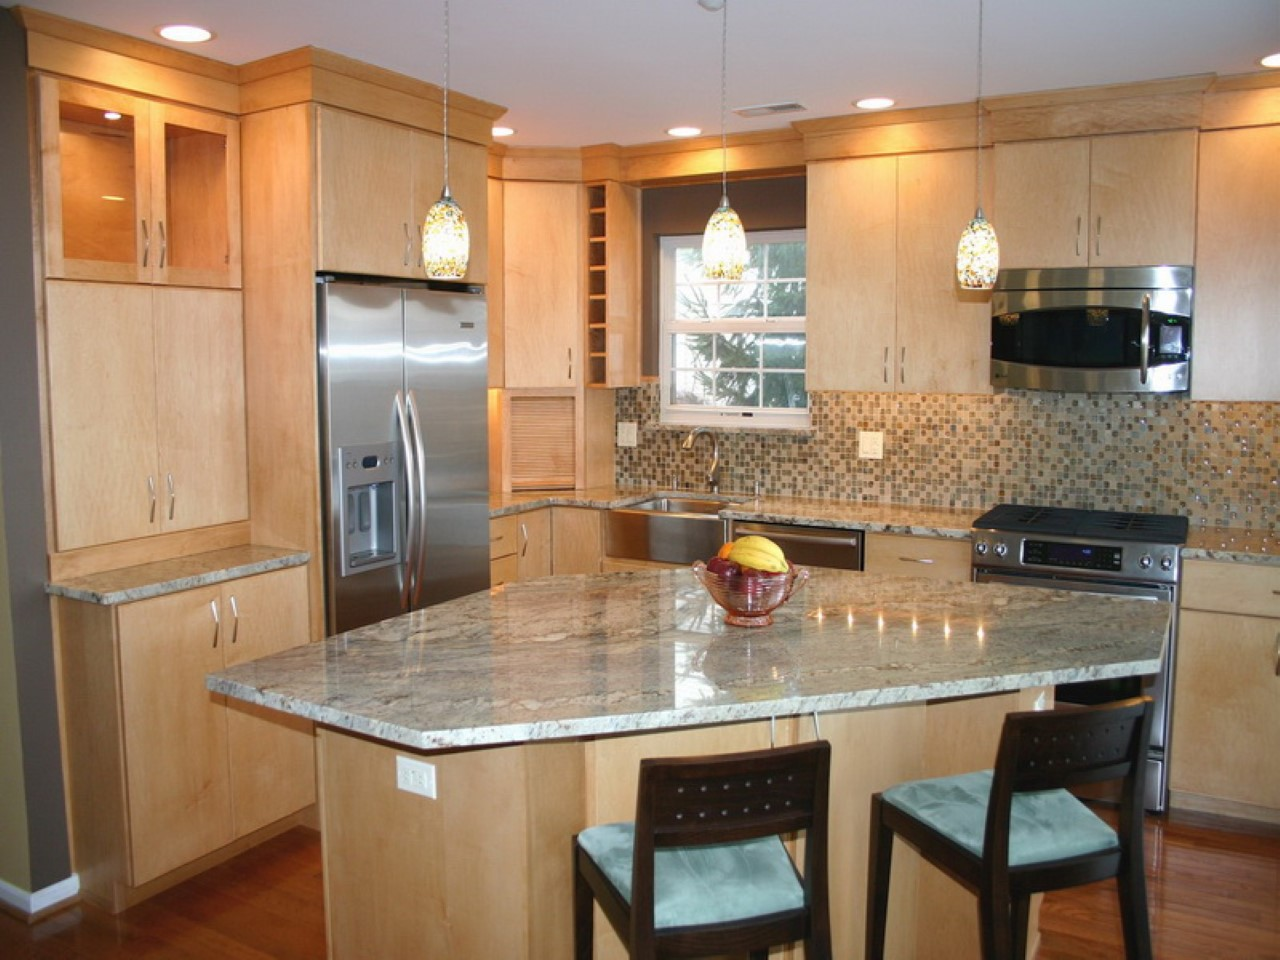 Best small kitchen design with island for perfect for Best kitchen designs